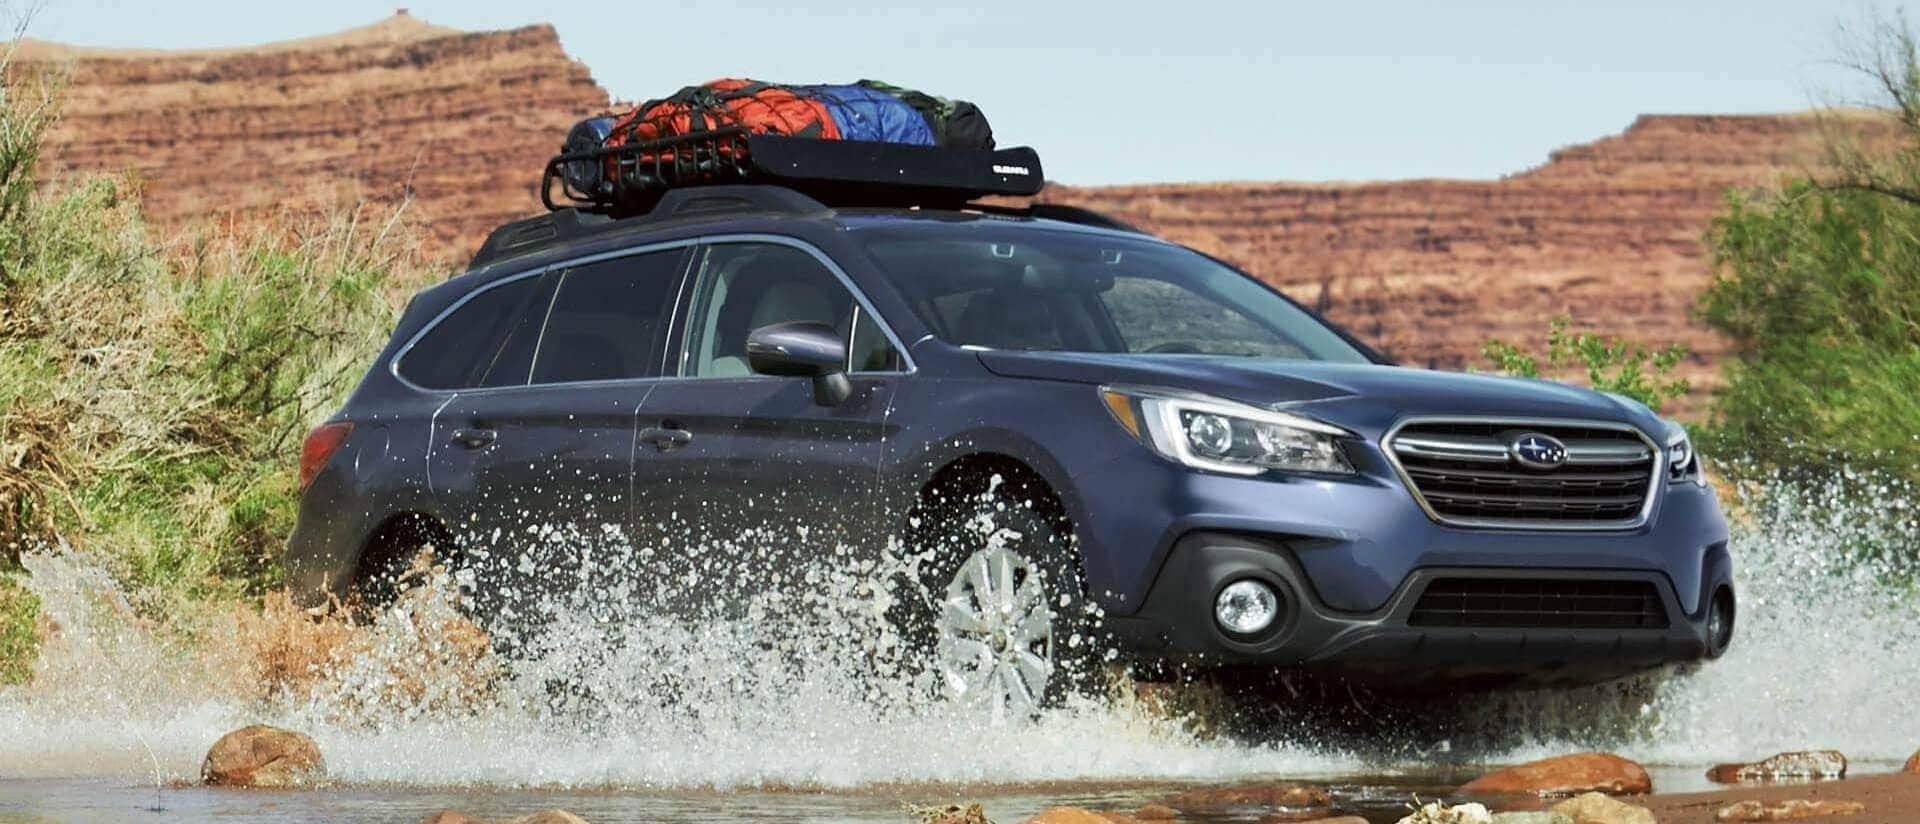 2018 Subaru Outback crossing a river